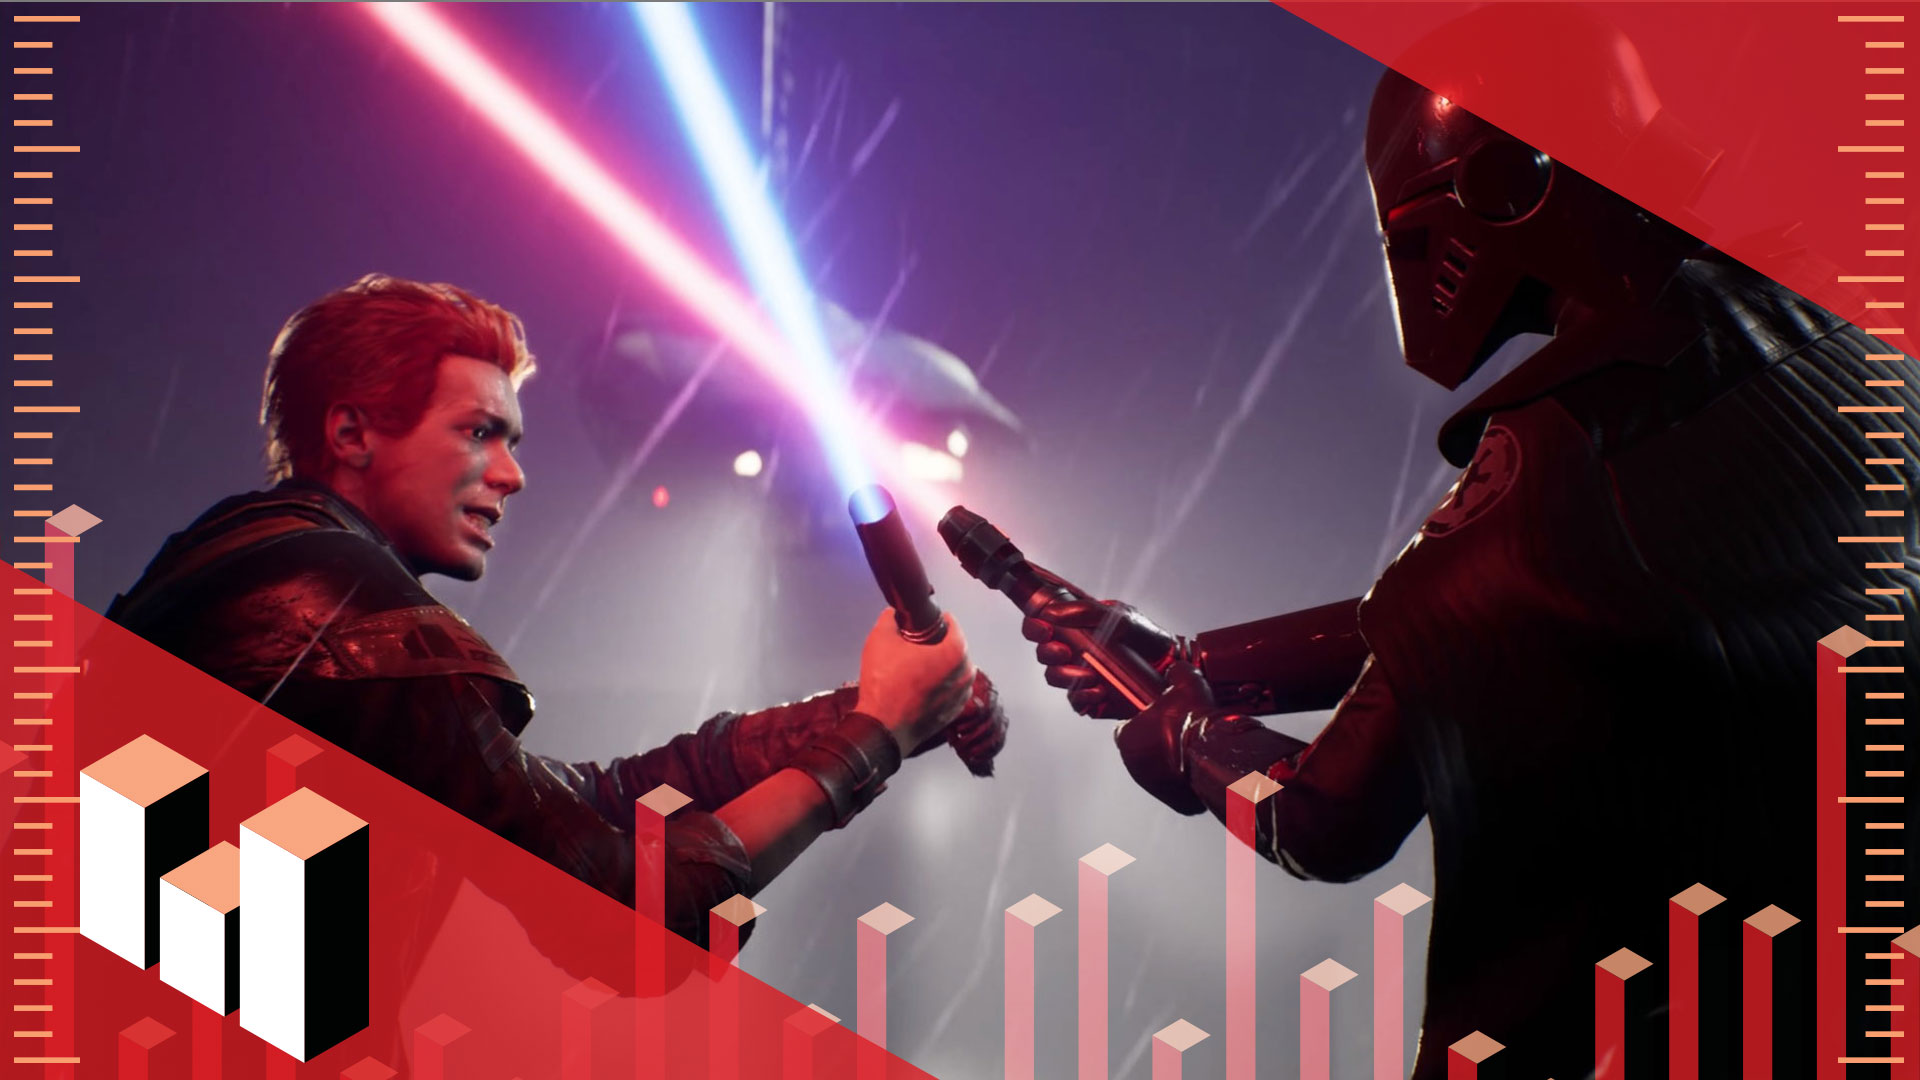 Star Wars Jedi Fallen Order Benchmarks Settings And Performance